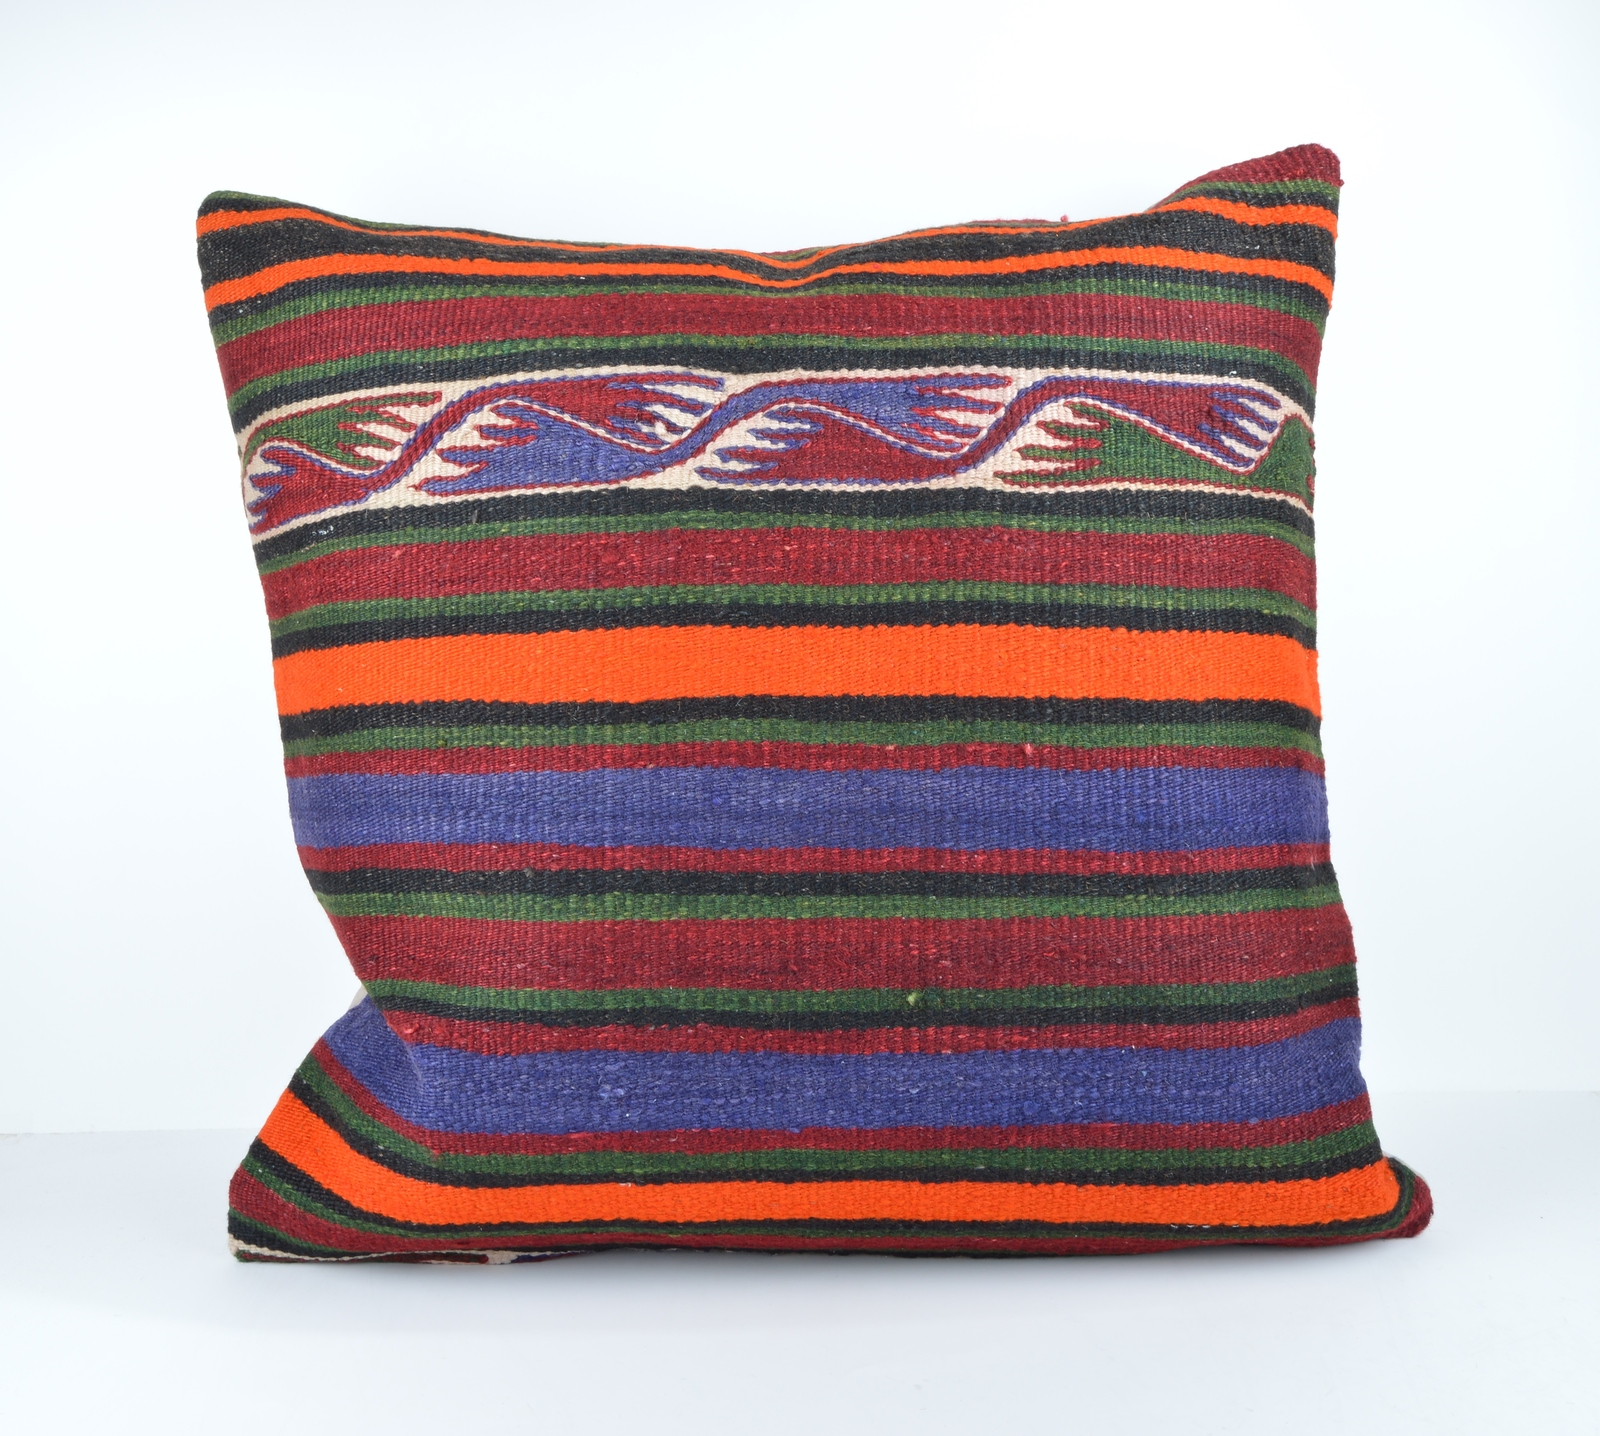 Oversized Decorative Pillow Covers : 24x24 large kilim pillow big pillow decorative pillow cover large kilim cushion - Pillows